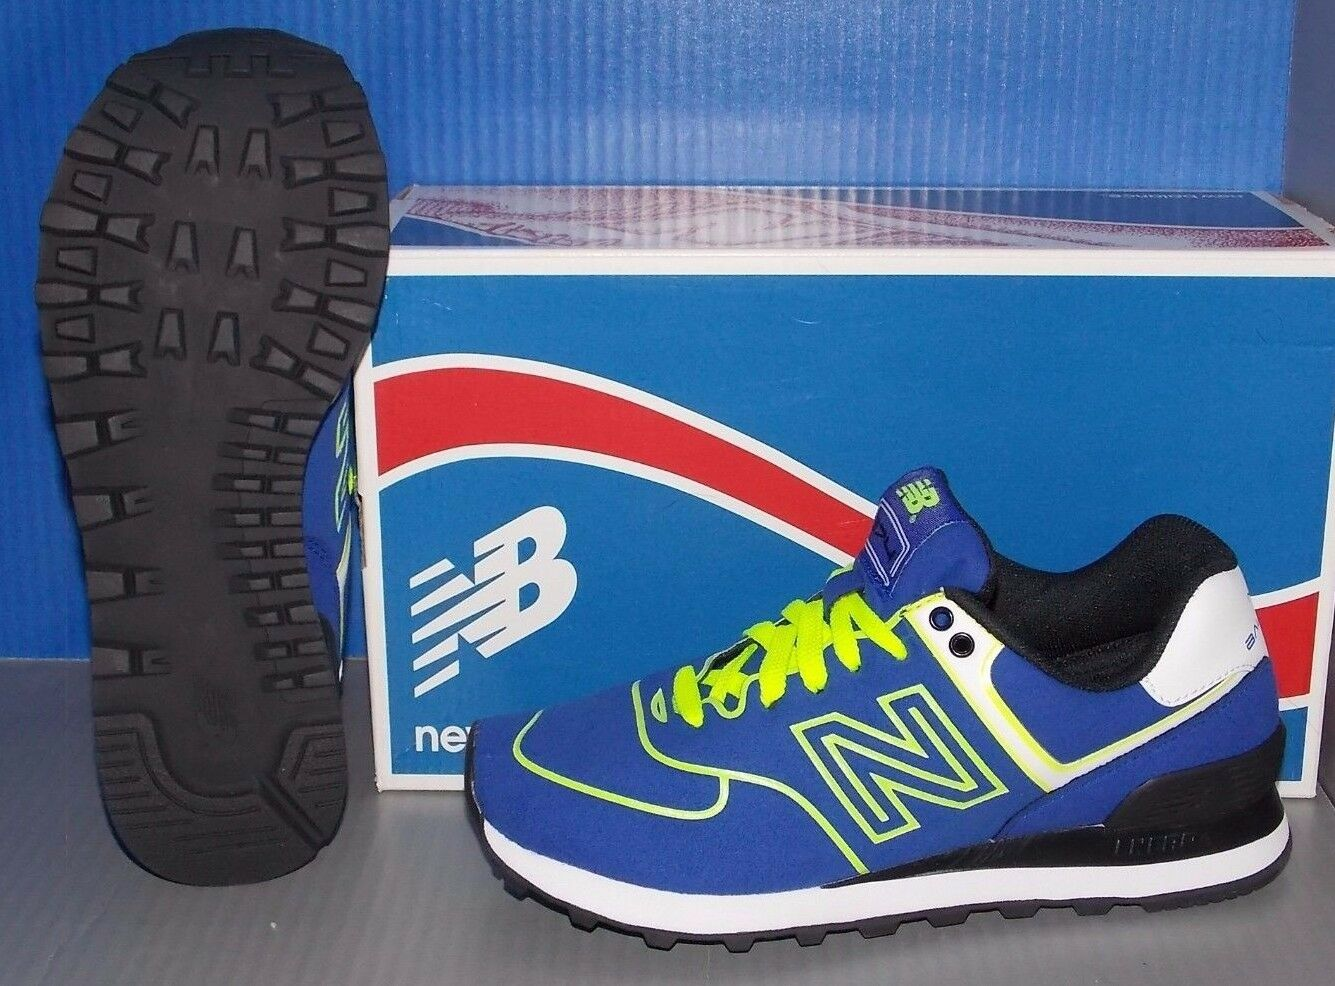 Damenschuhe NEW BALANCE WL 574 NEB in colors Blau Blau Blau / NEON YELLOW SIZE 7.5 263e59